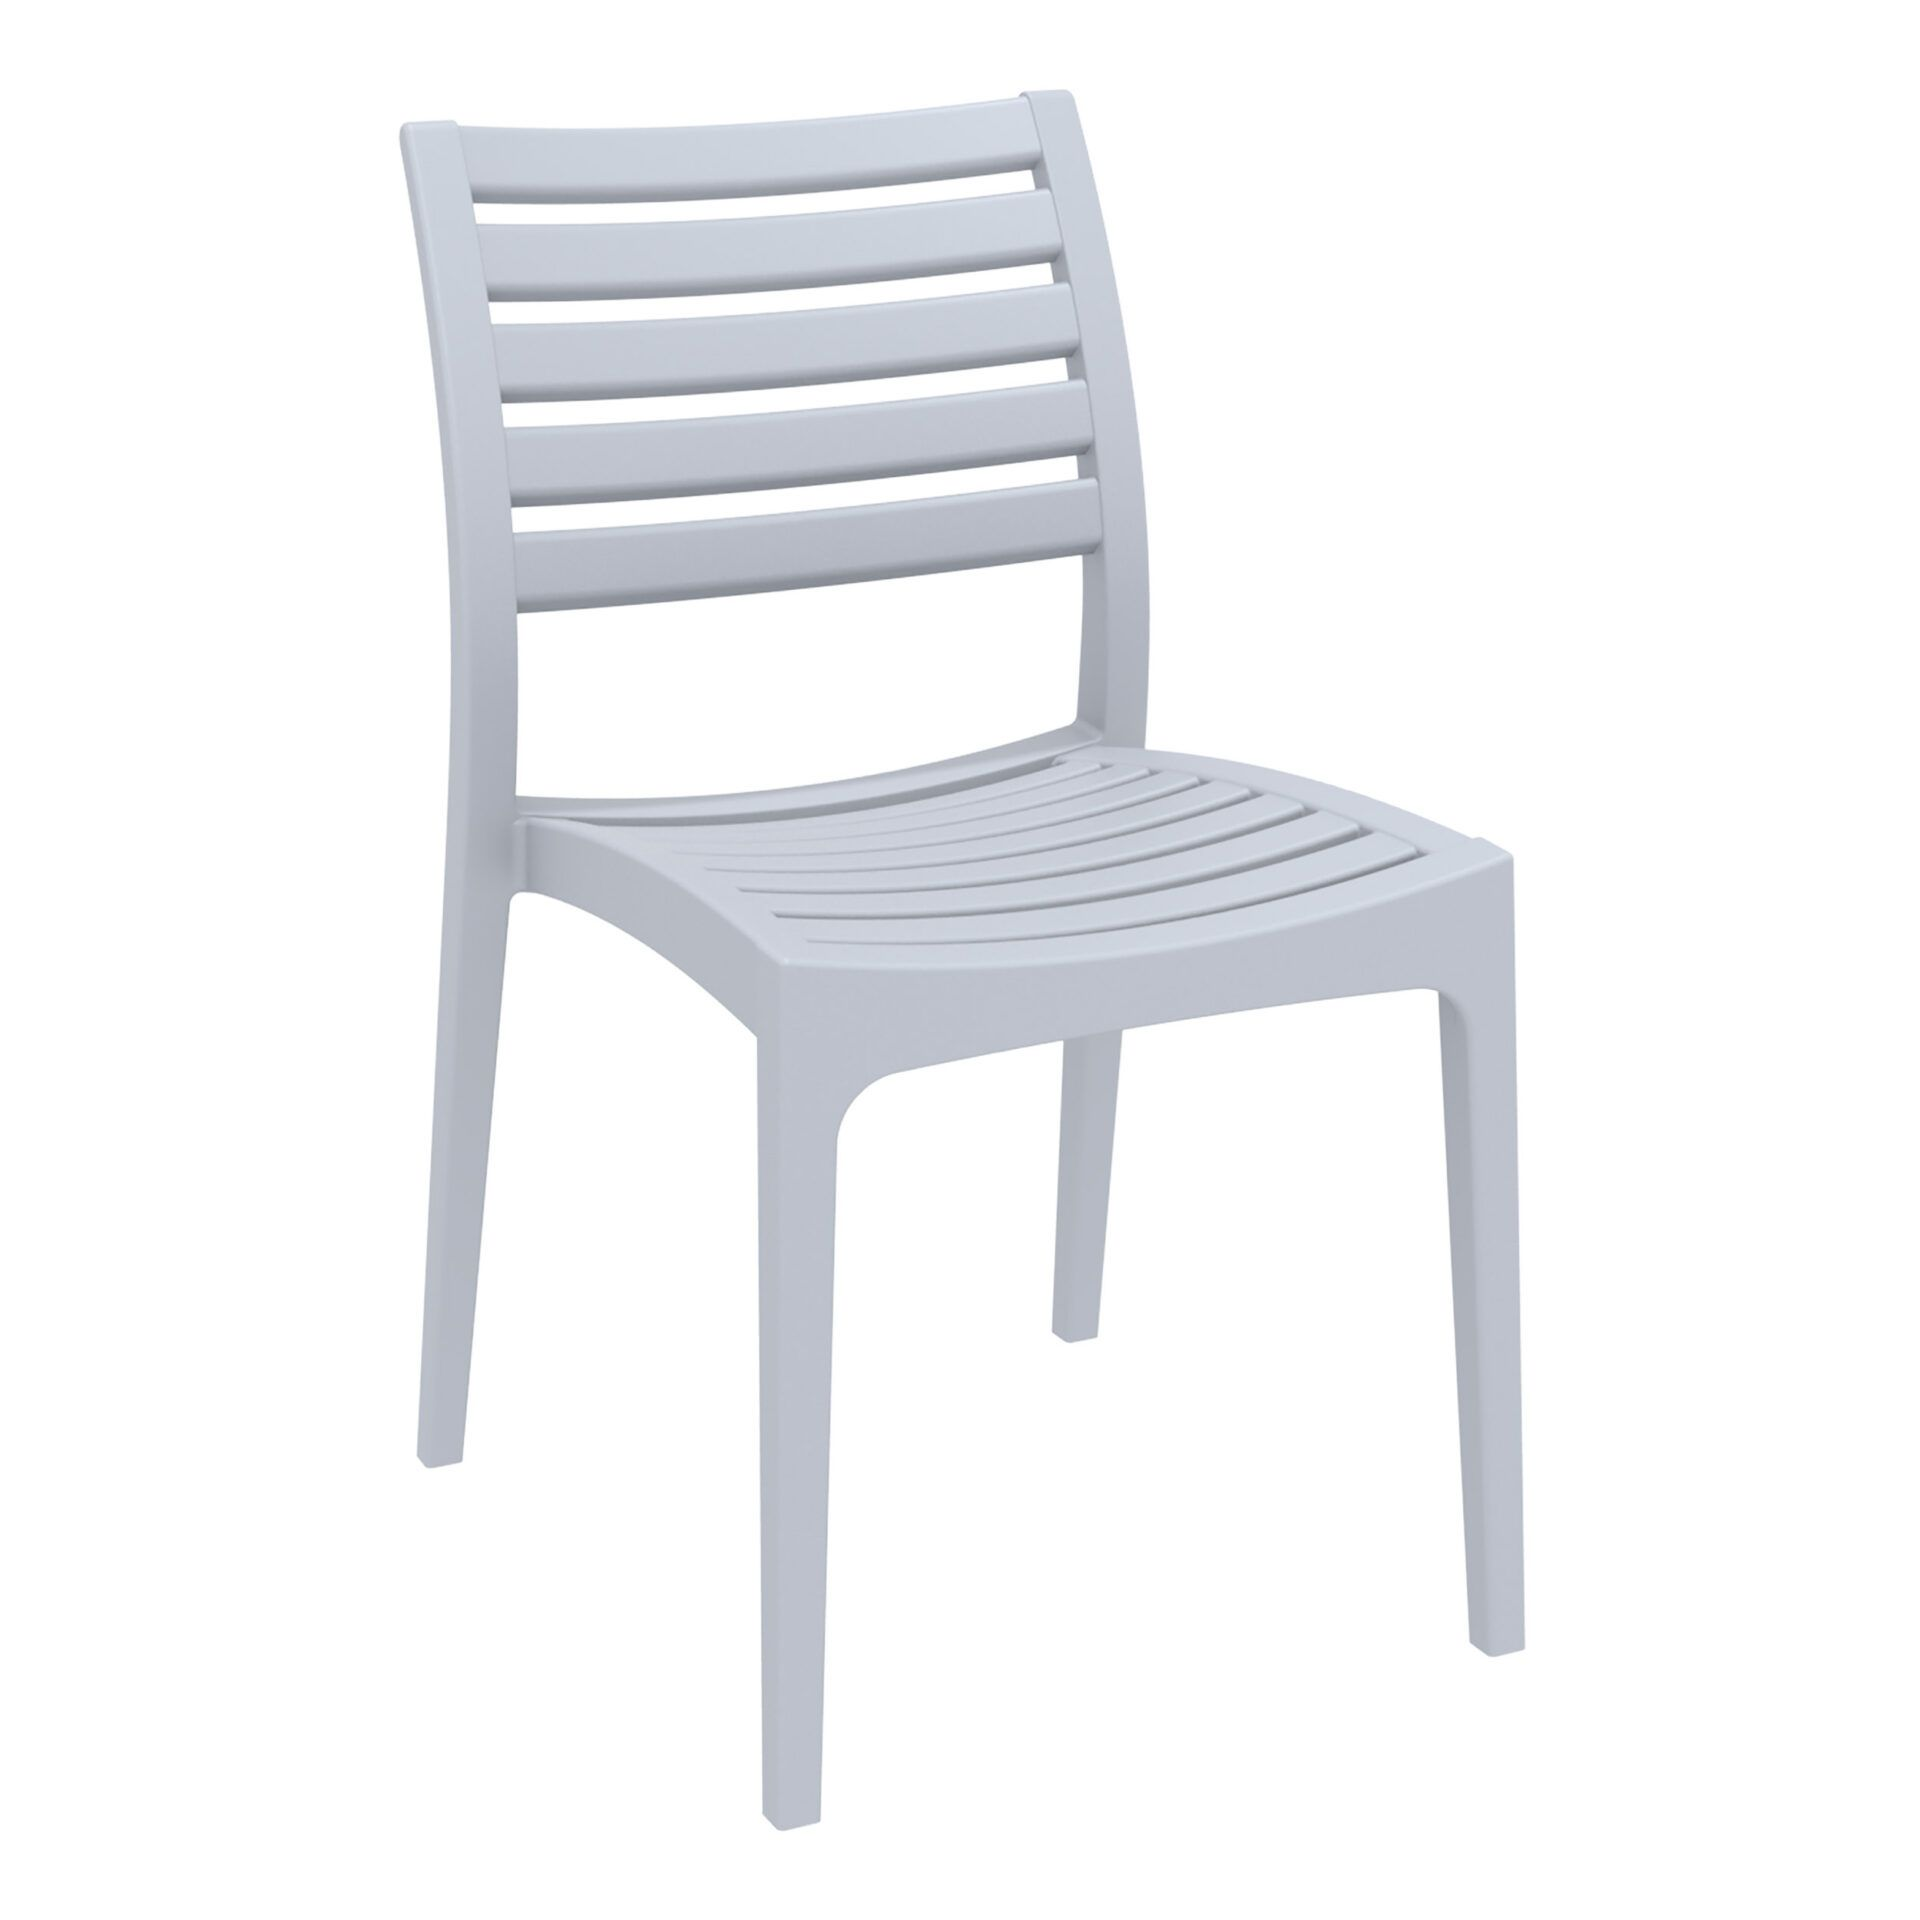 outdoor ares chair silvergrey front side